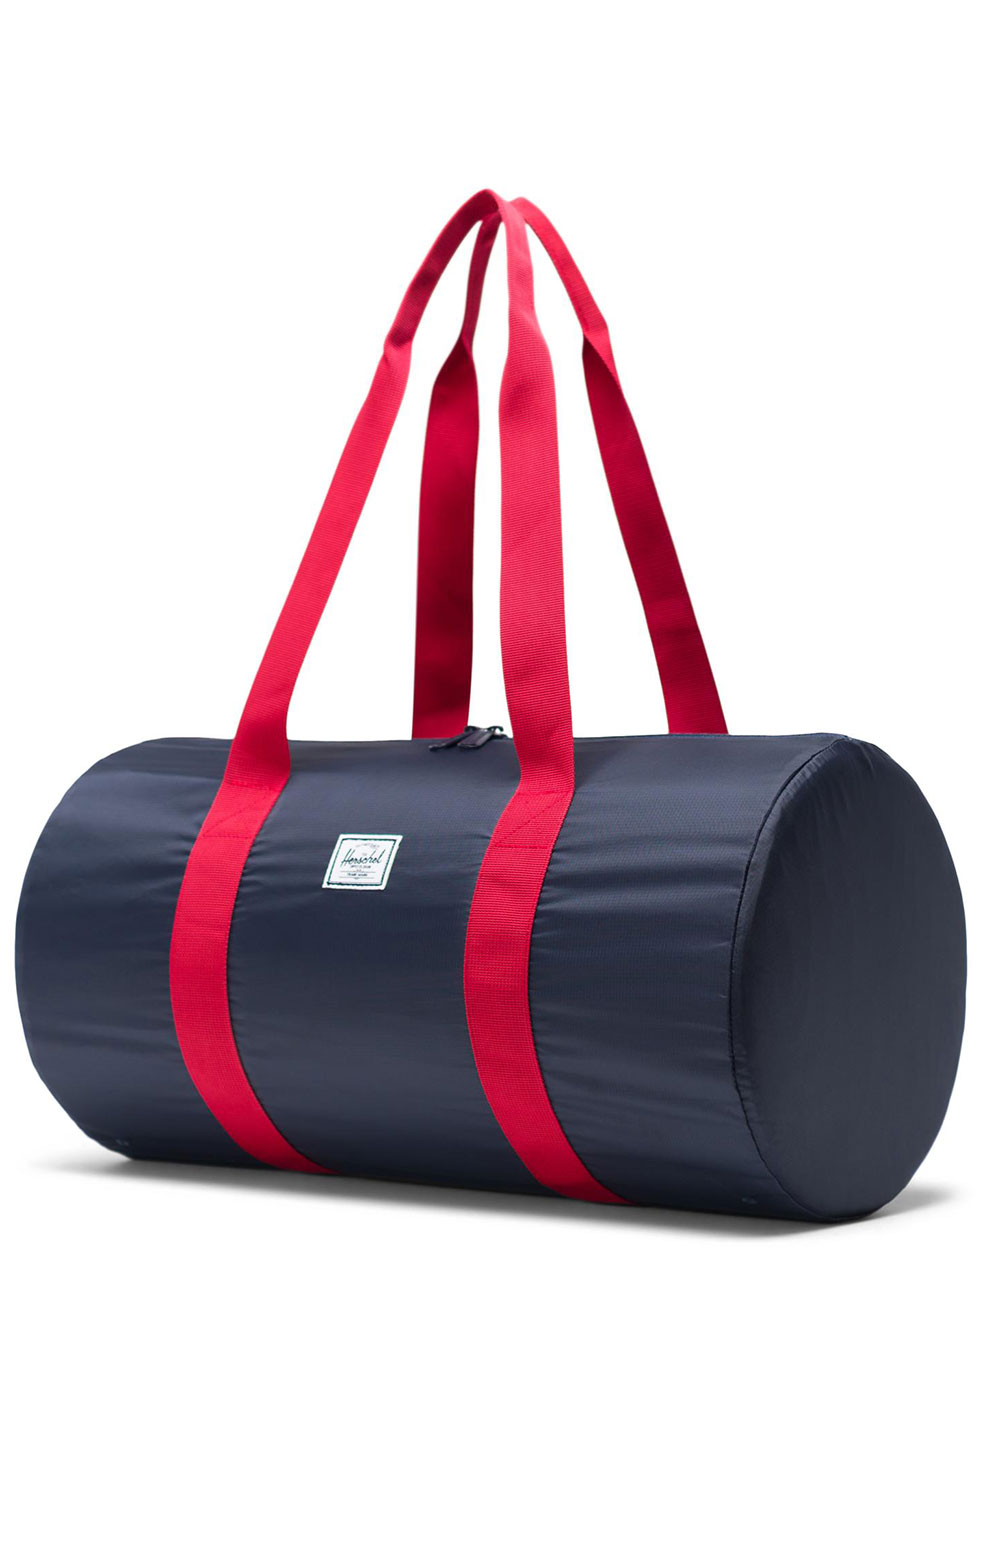 Packable Duffle Bag - Navy/Red 2